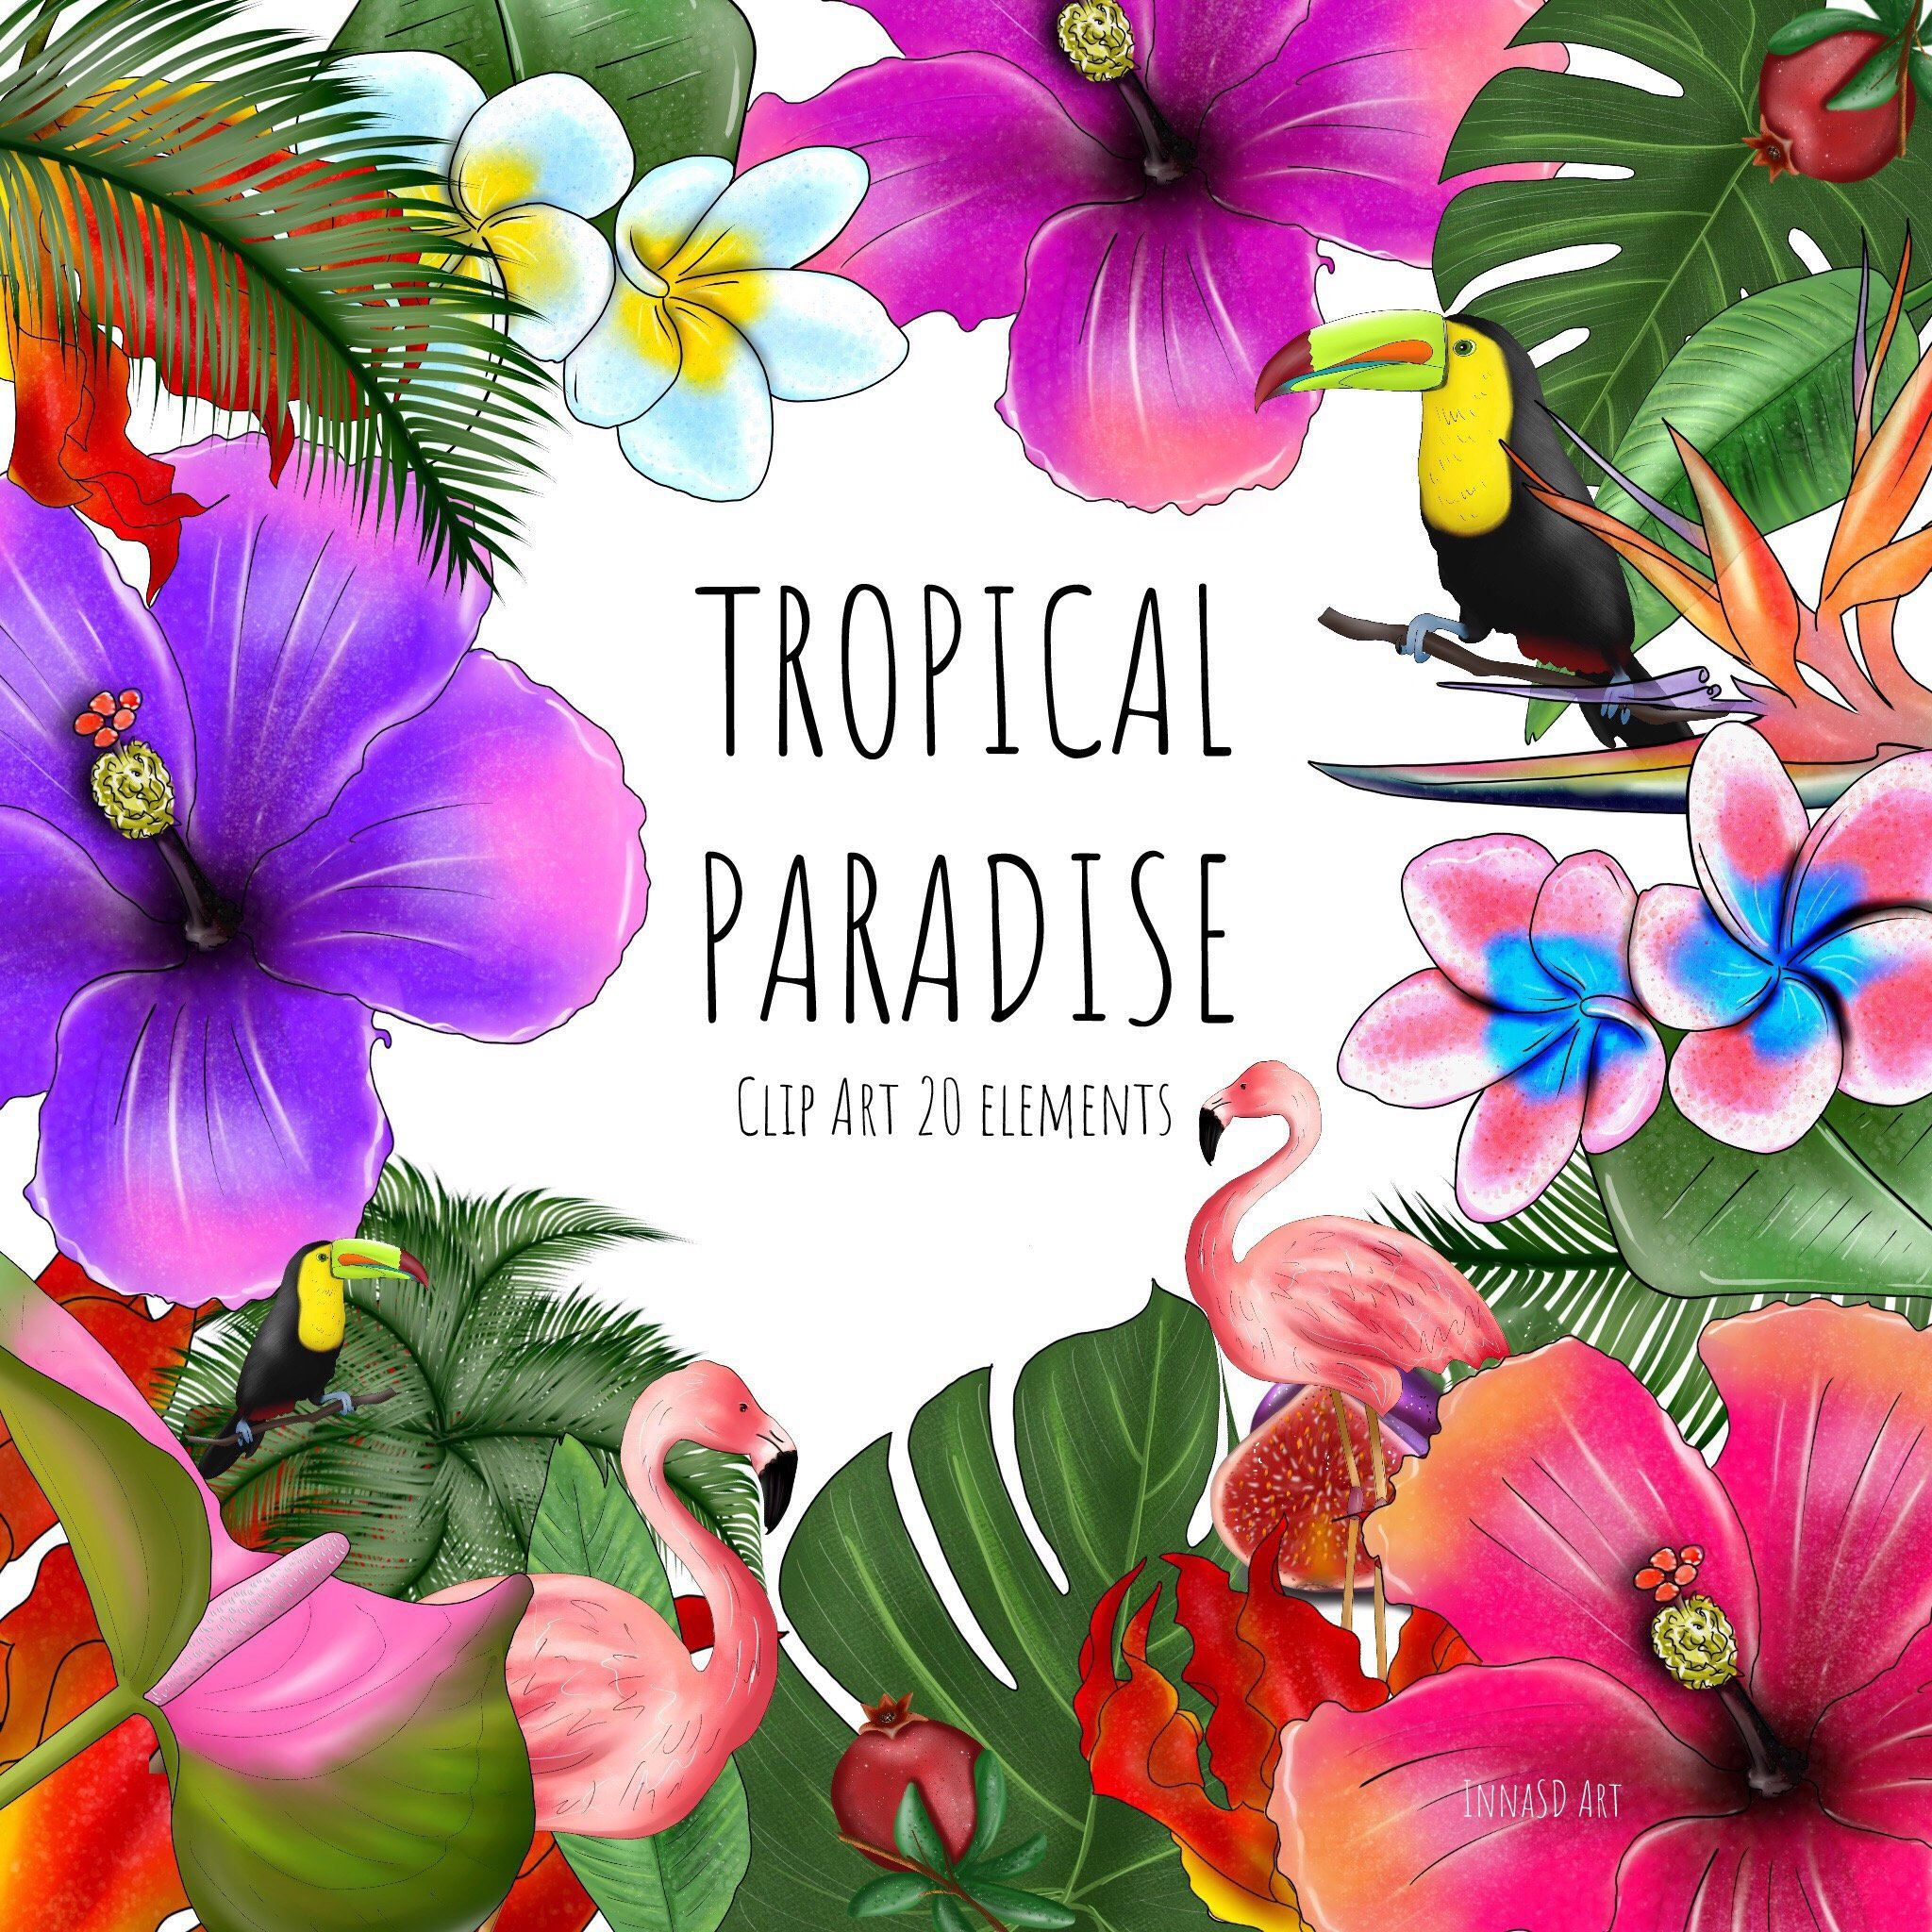 small resolution of digital floral clipart tropical clipart paradise beach clipart hawaii clipart flamingo clipart tropical flowers clipart jungle clipart by innasdart on